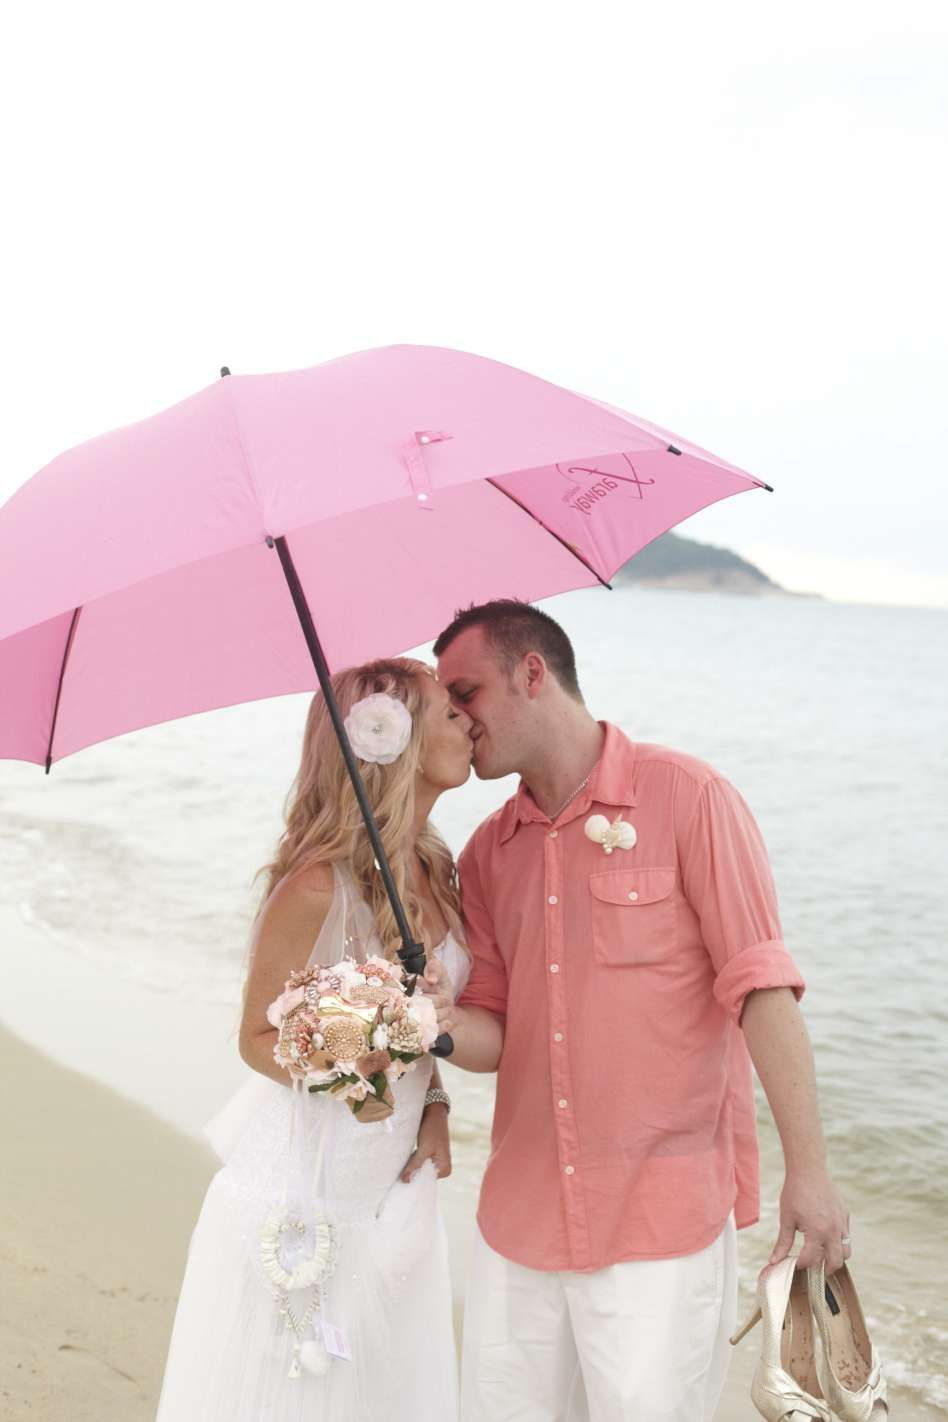 Don't forget the pink umberella....even a beach wedding can have a shower or two! Beach weddings, Koh Samui, Thailand